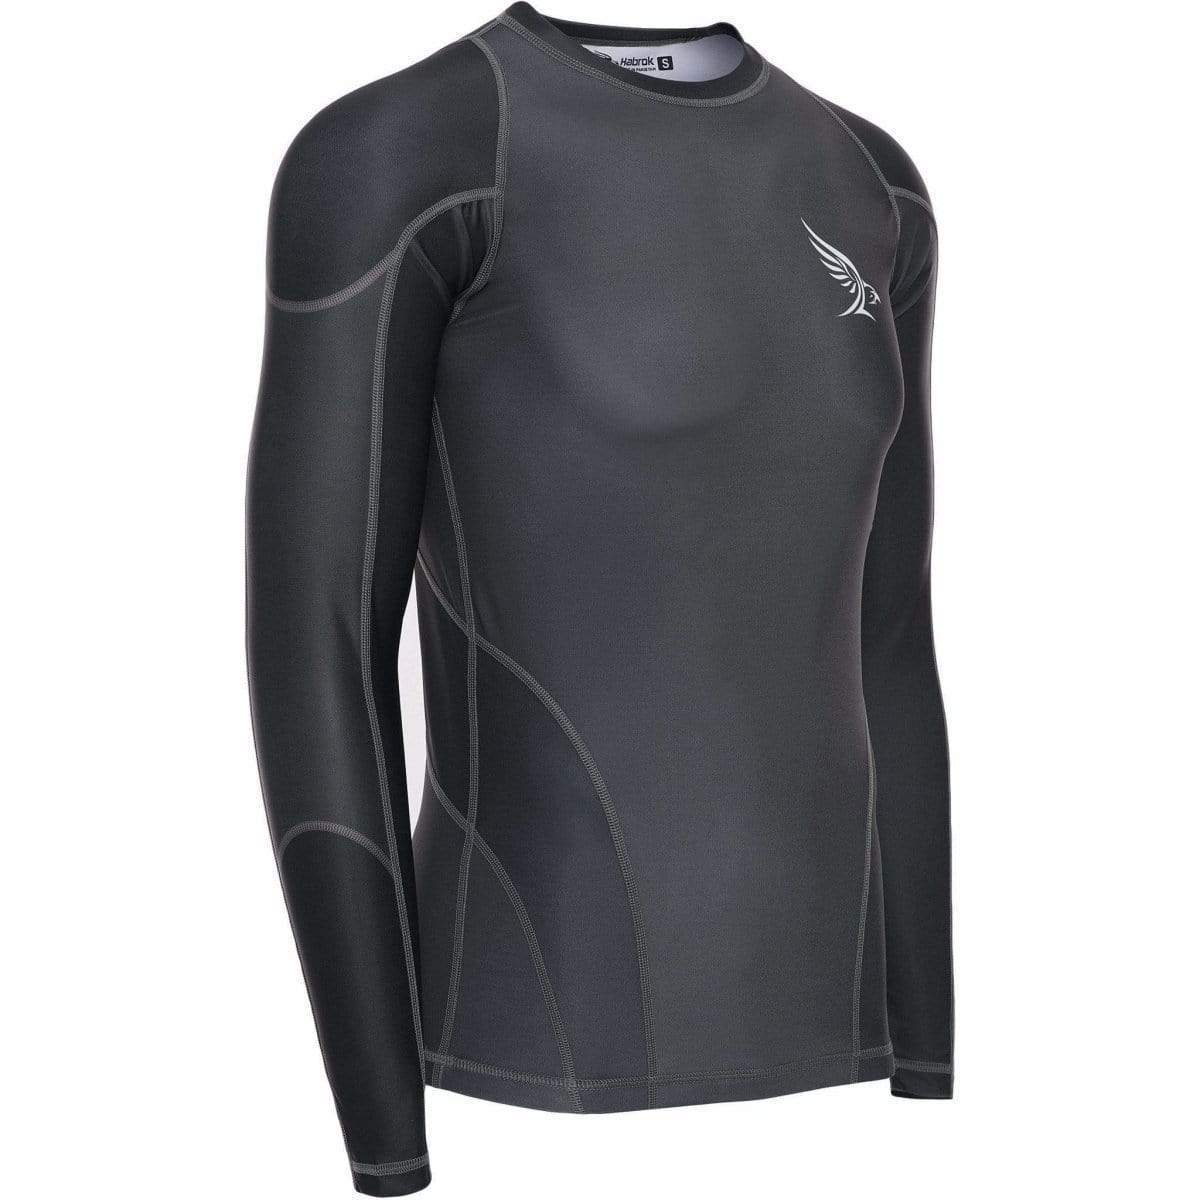 Habrok Rash Guard S / GREY Pugnator | Rash Guard | Men Pugnator | Rash Guard | Habrok